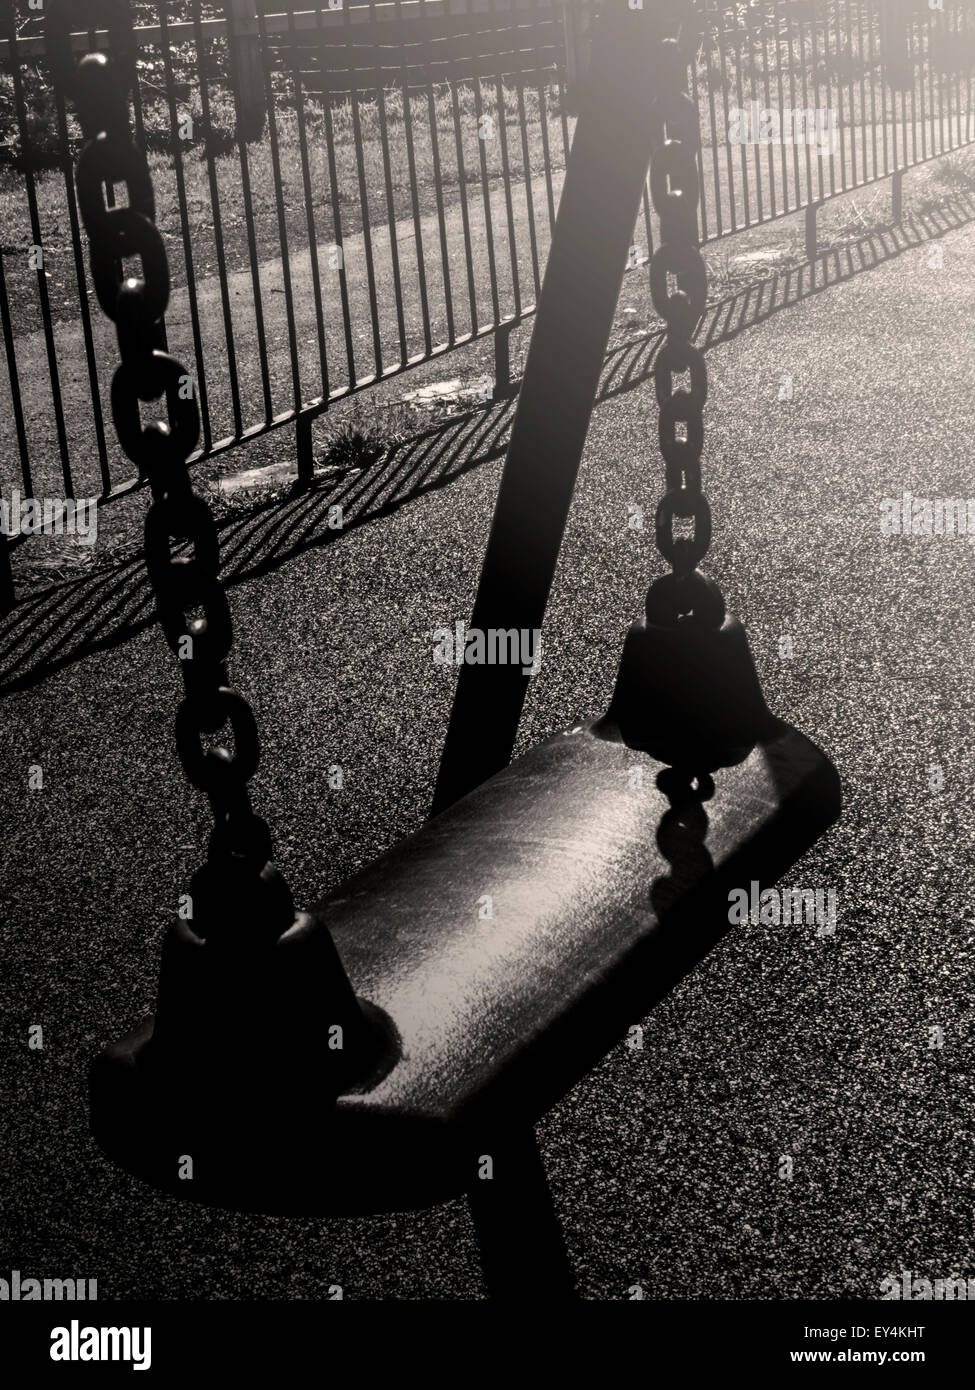 Swing in sun glare (empty) - Stock Image